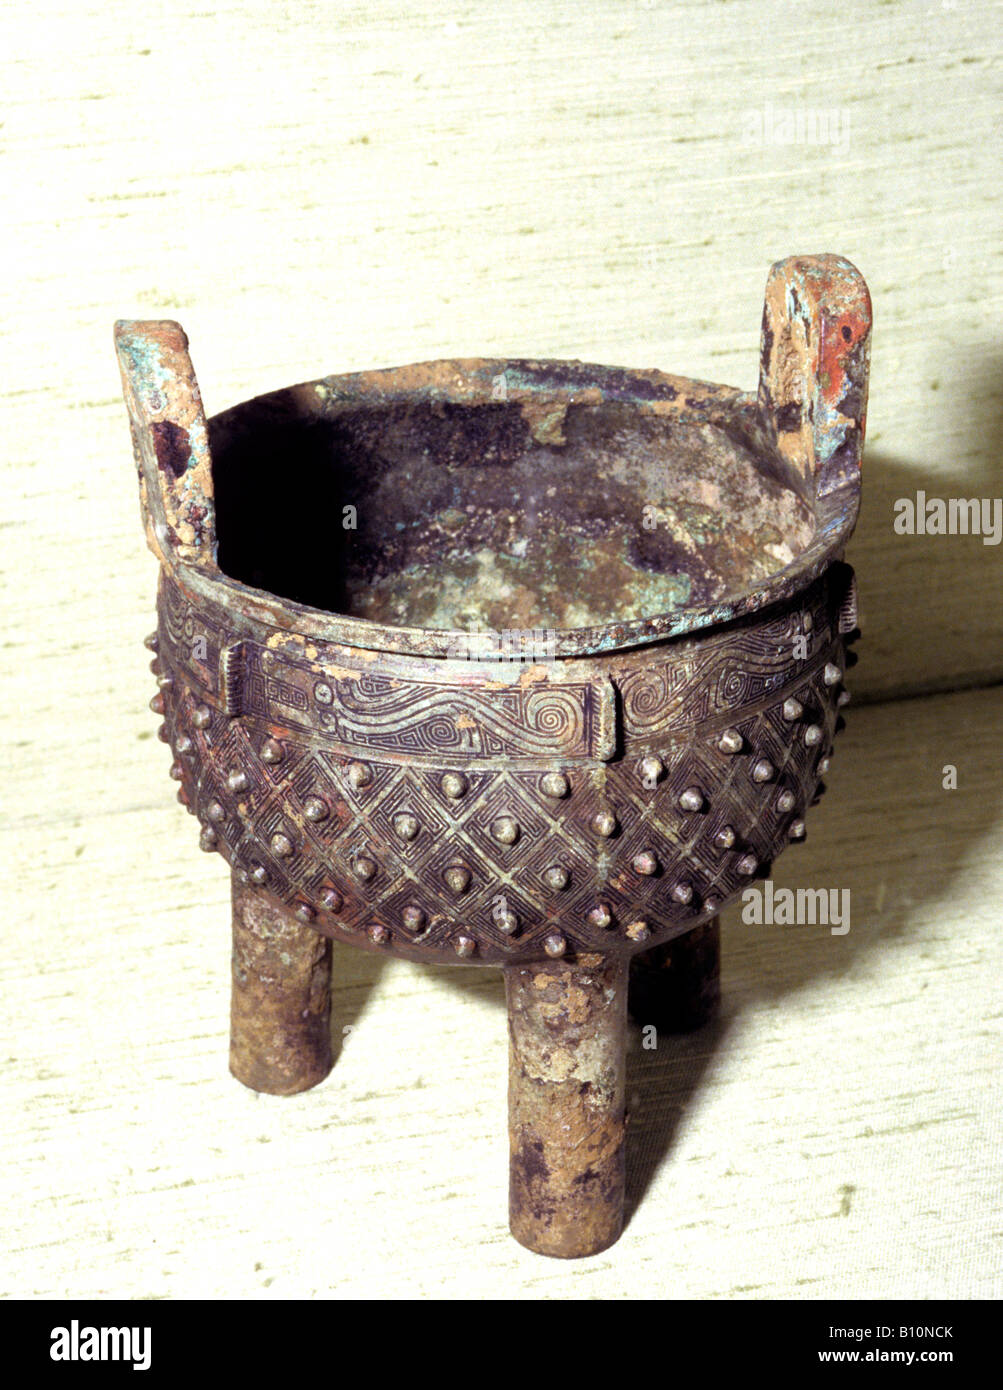 Bronze ritual vessel Ding Shang Dynasty 12th cent BC China - Stock Image